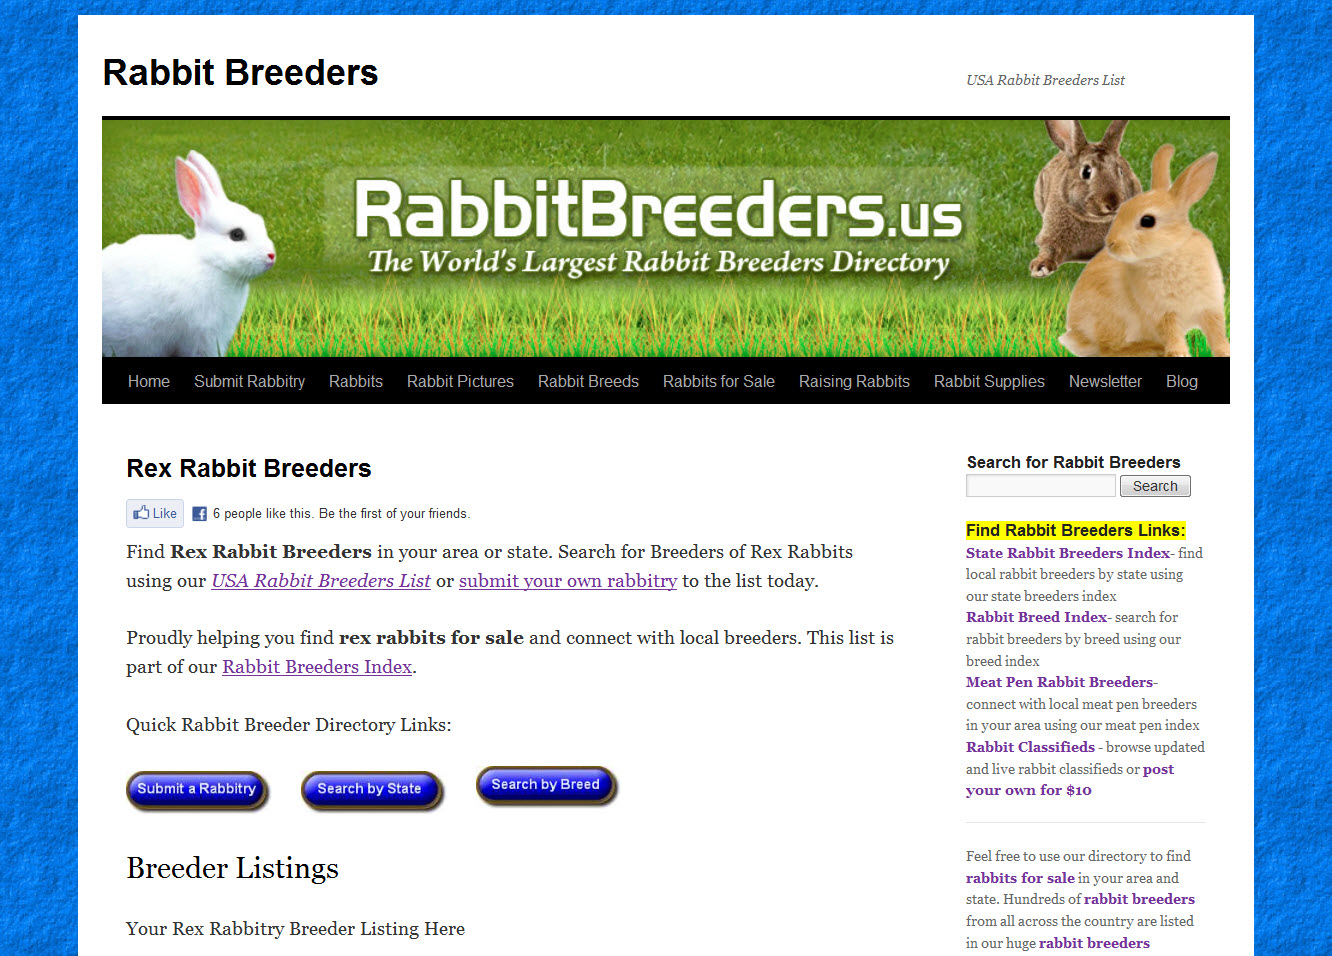 Rex Rabbit Breeders